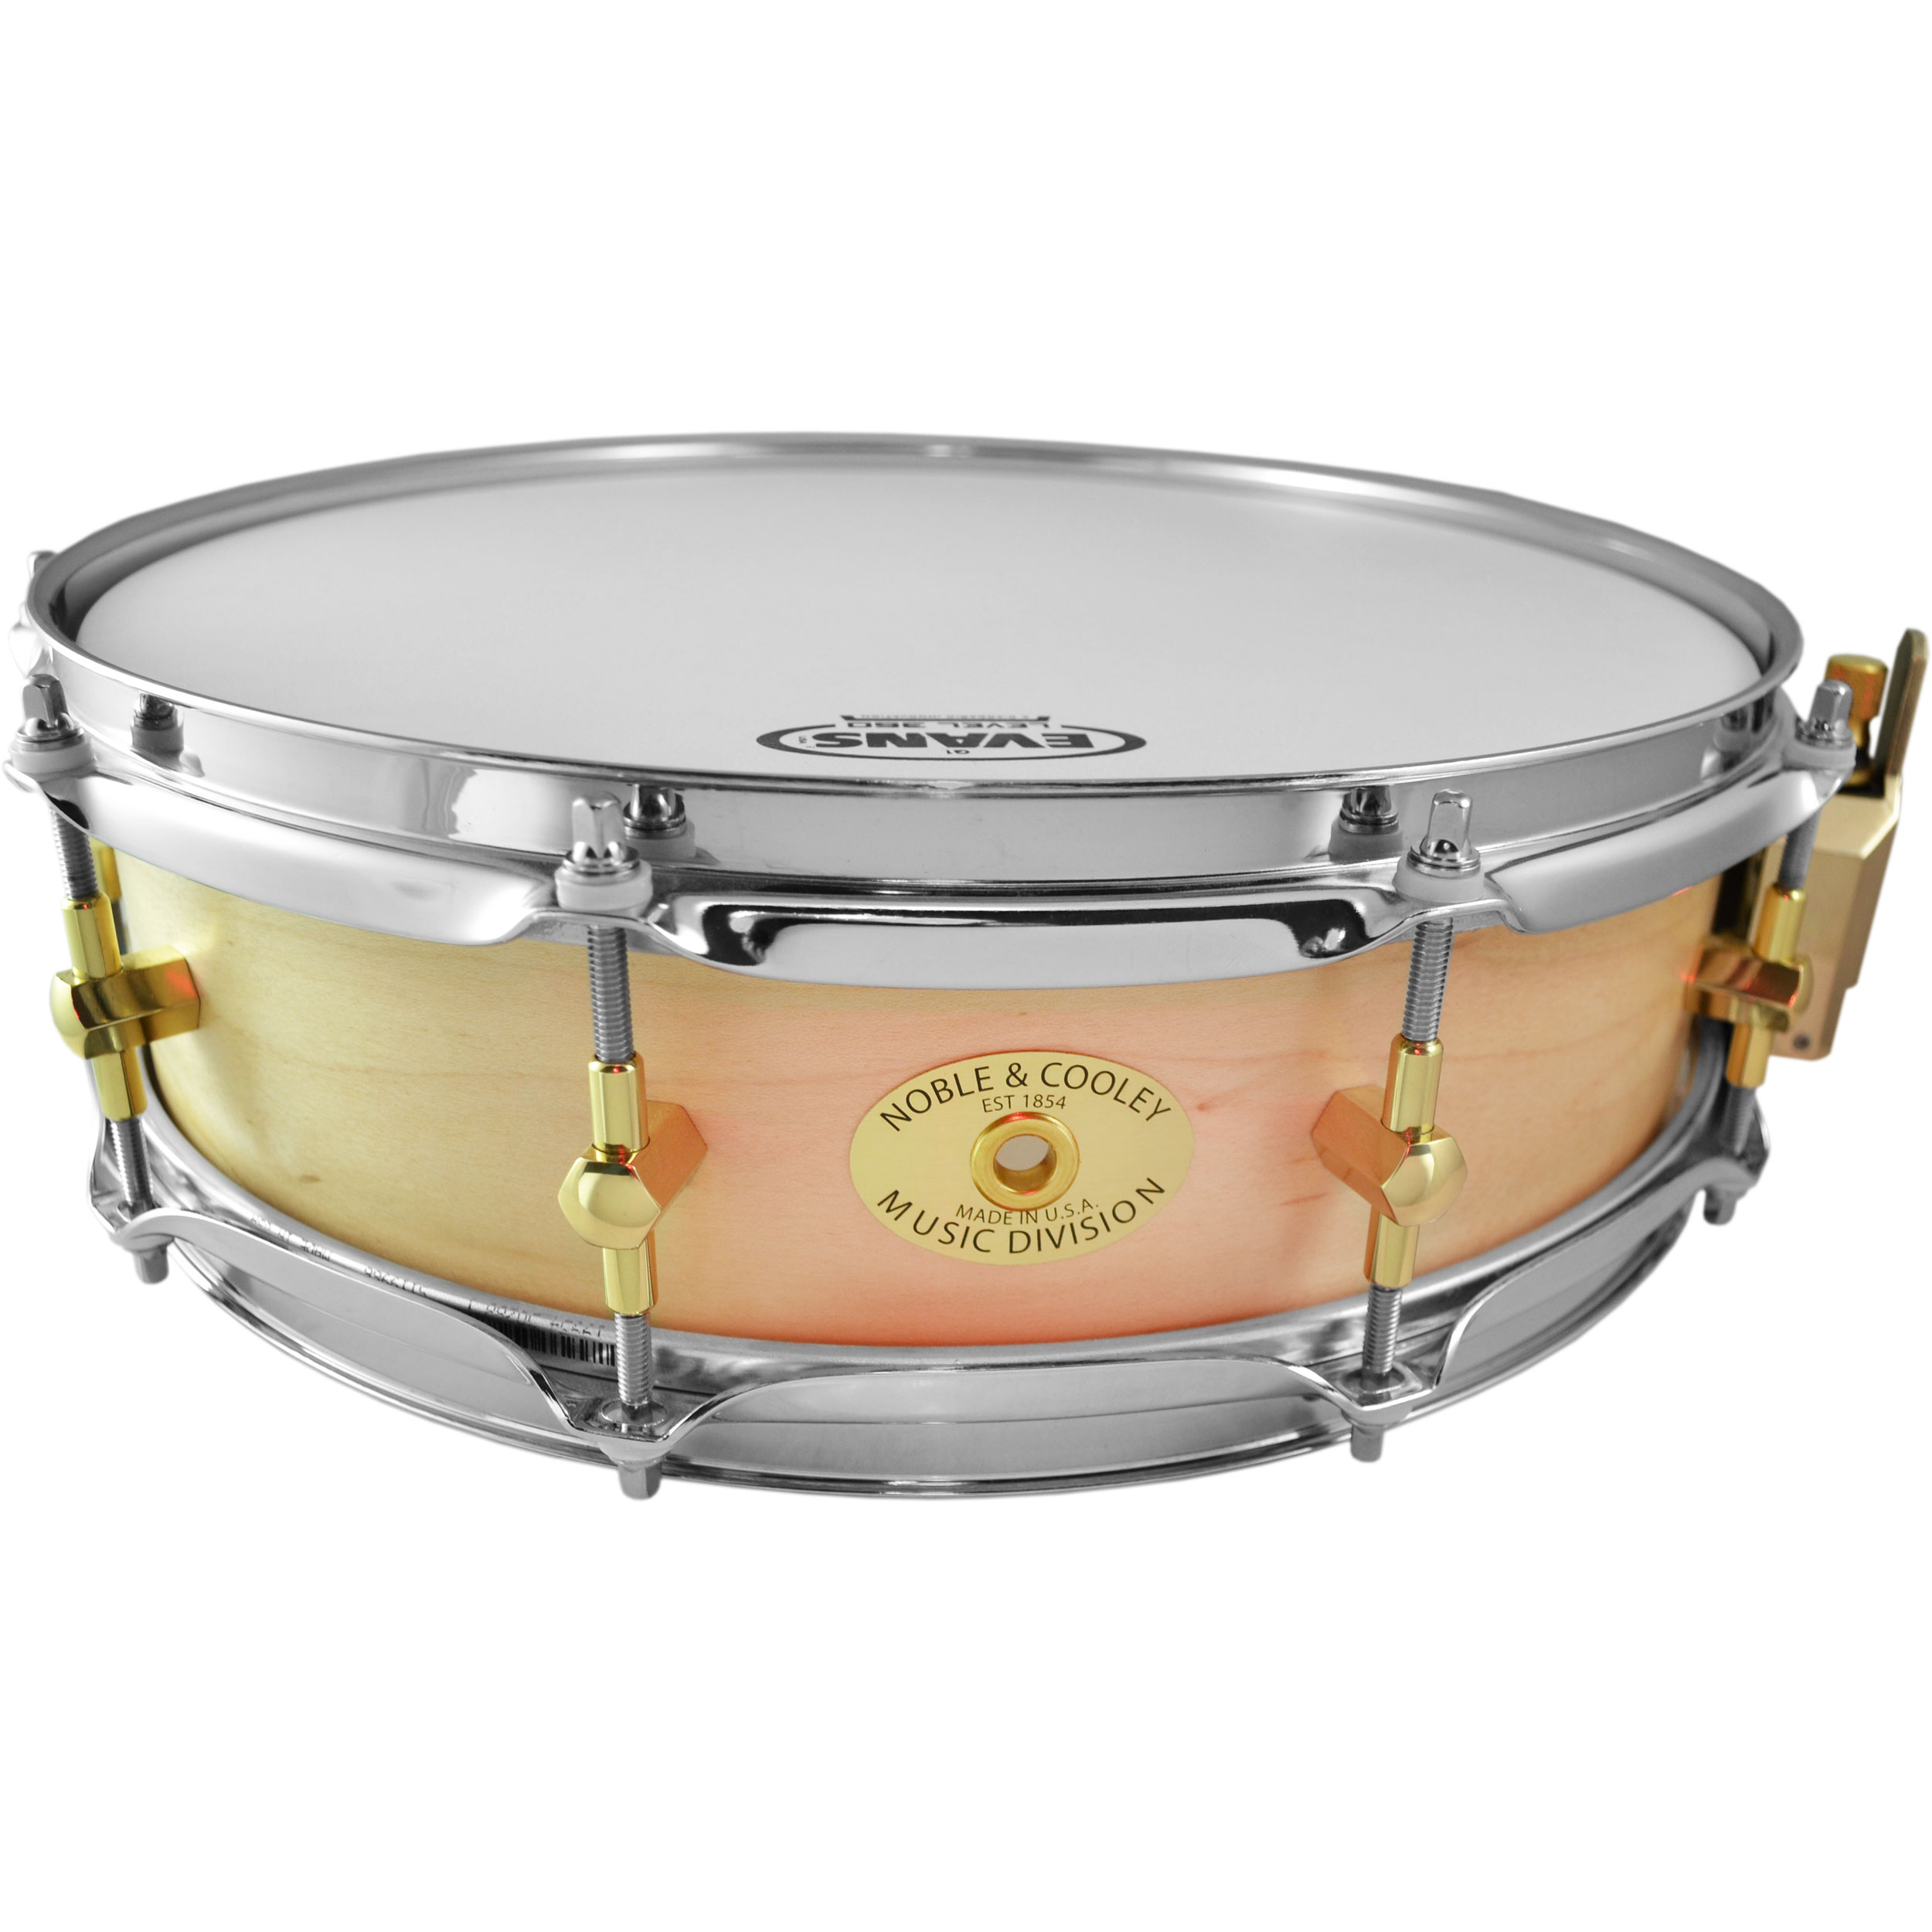 "Noble & Cooley 3-7/8"" x 14"" Classic Solid Shell Maple Piccolo Snare Drum in Clear Oil"